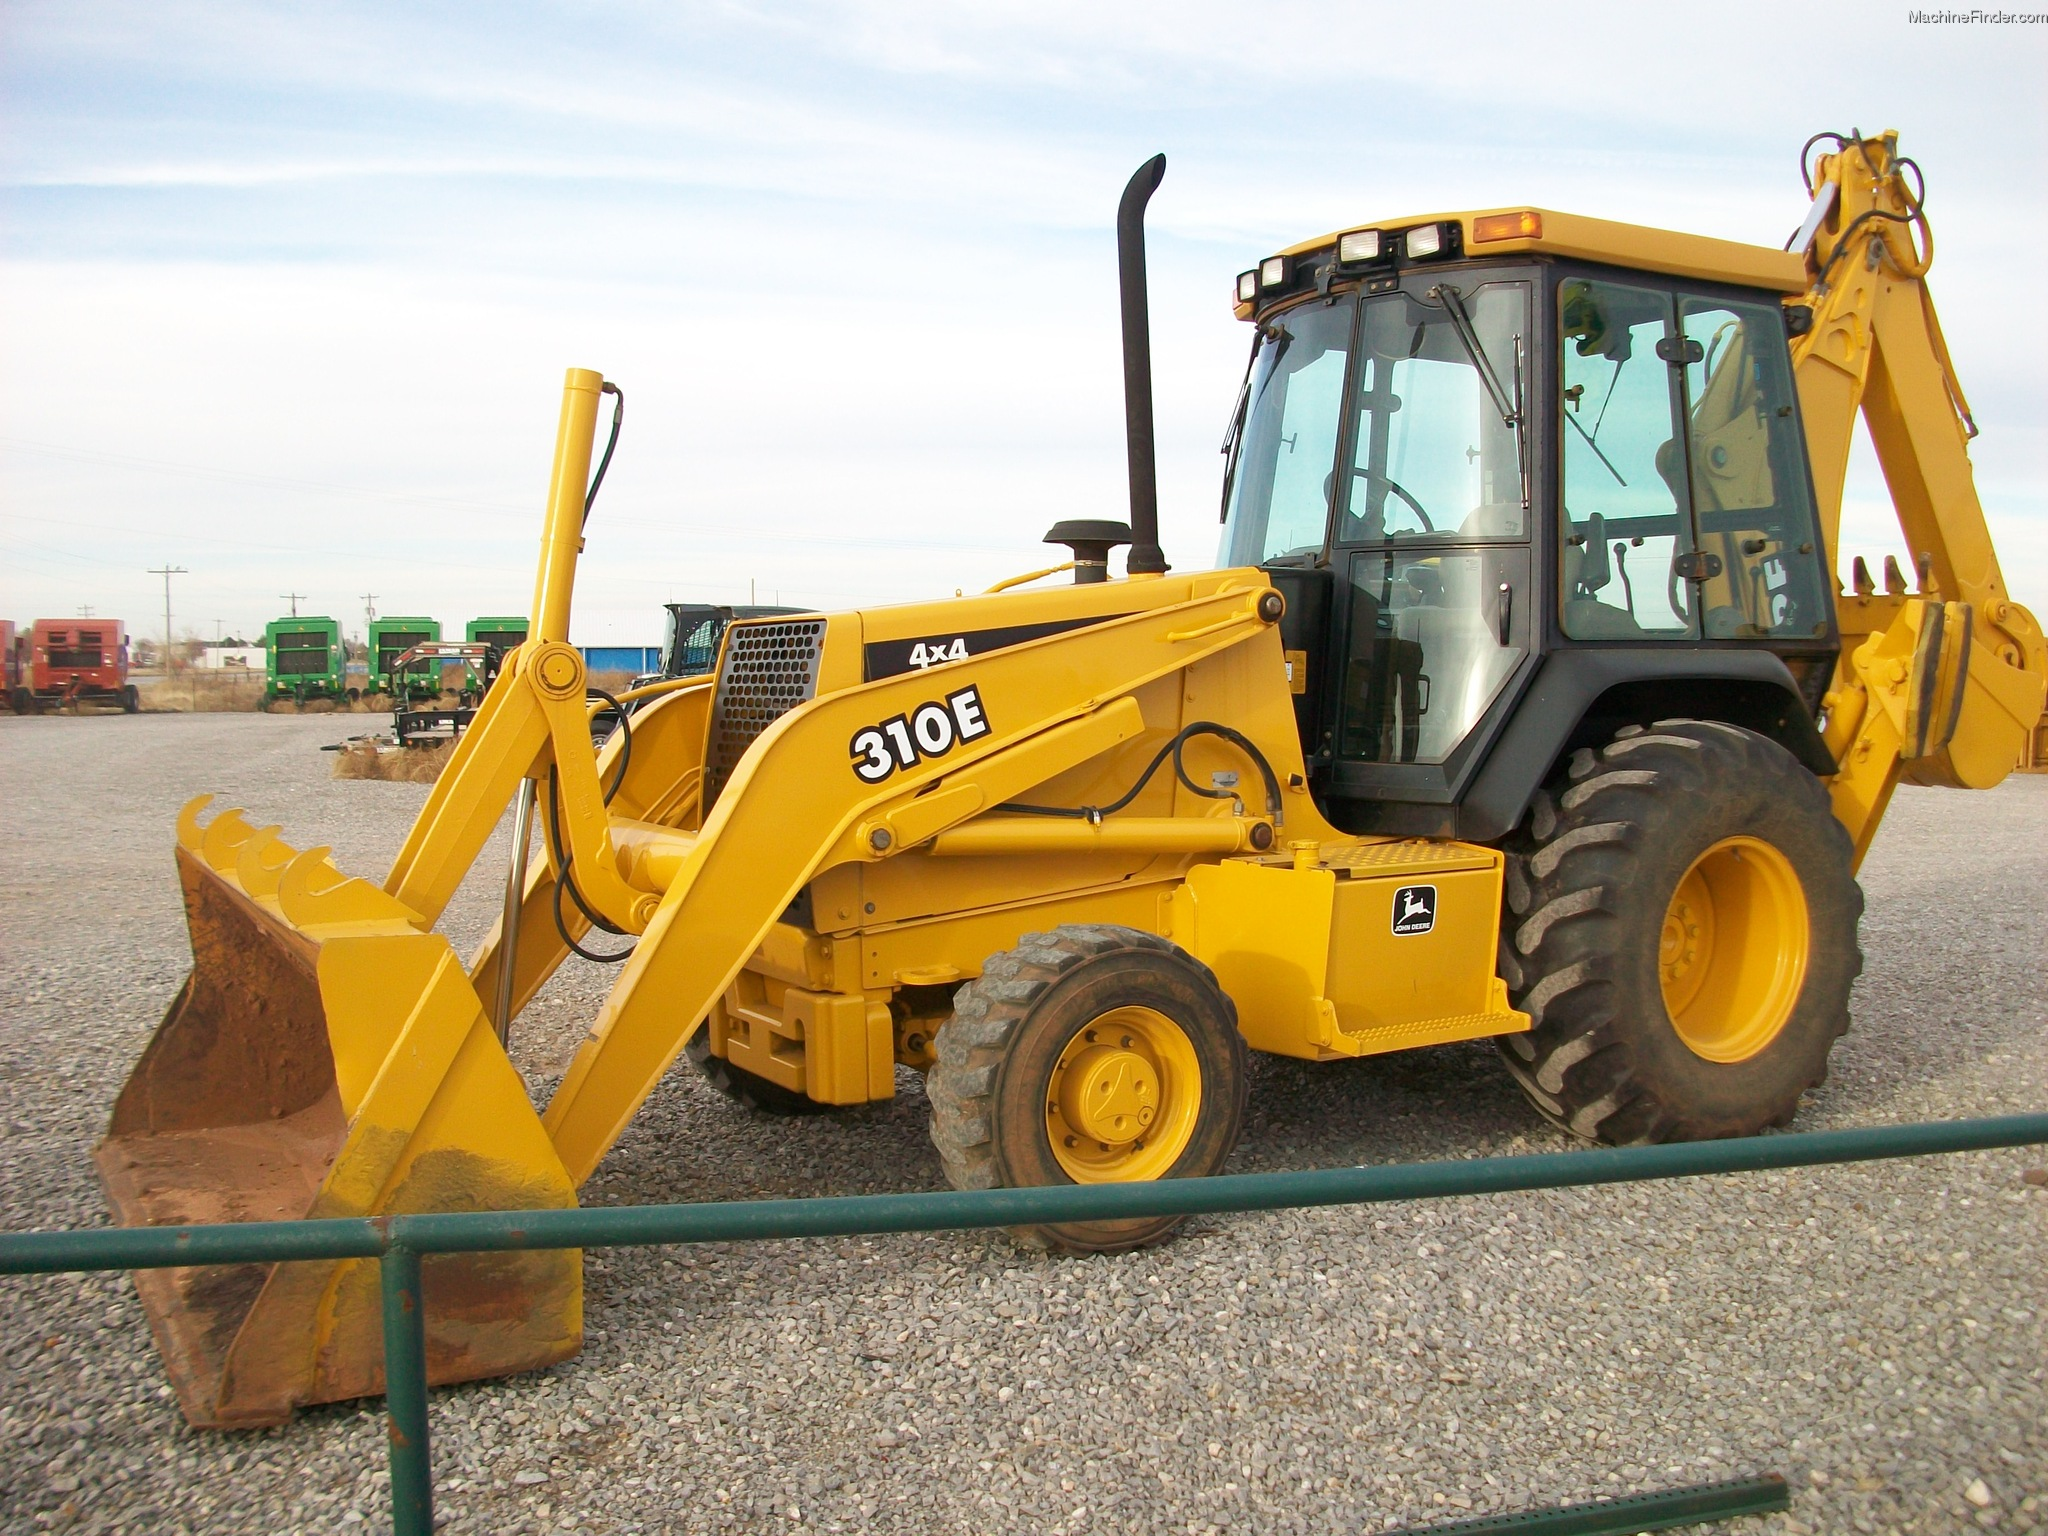 1999 John Deere 310E Backhoe Loaders - John Deere ...